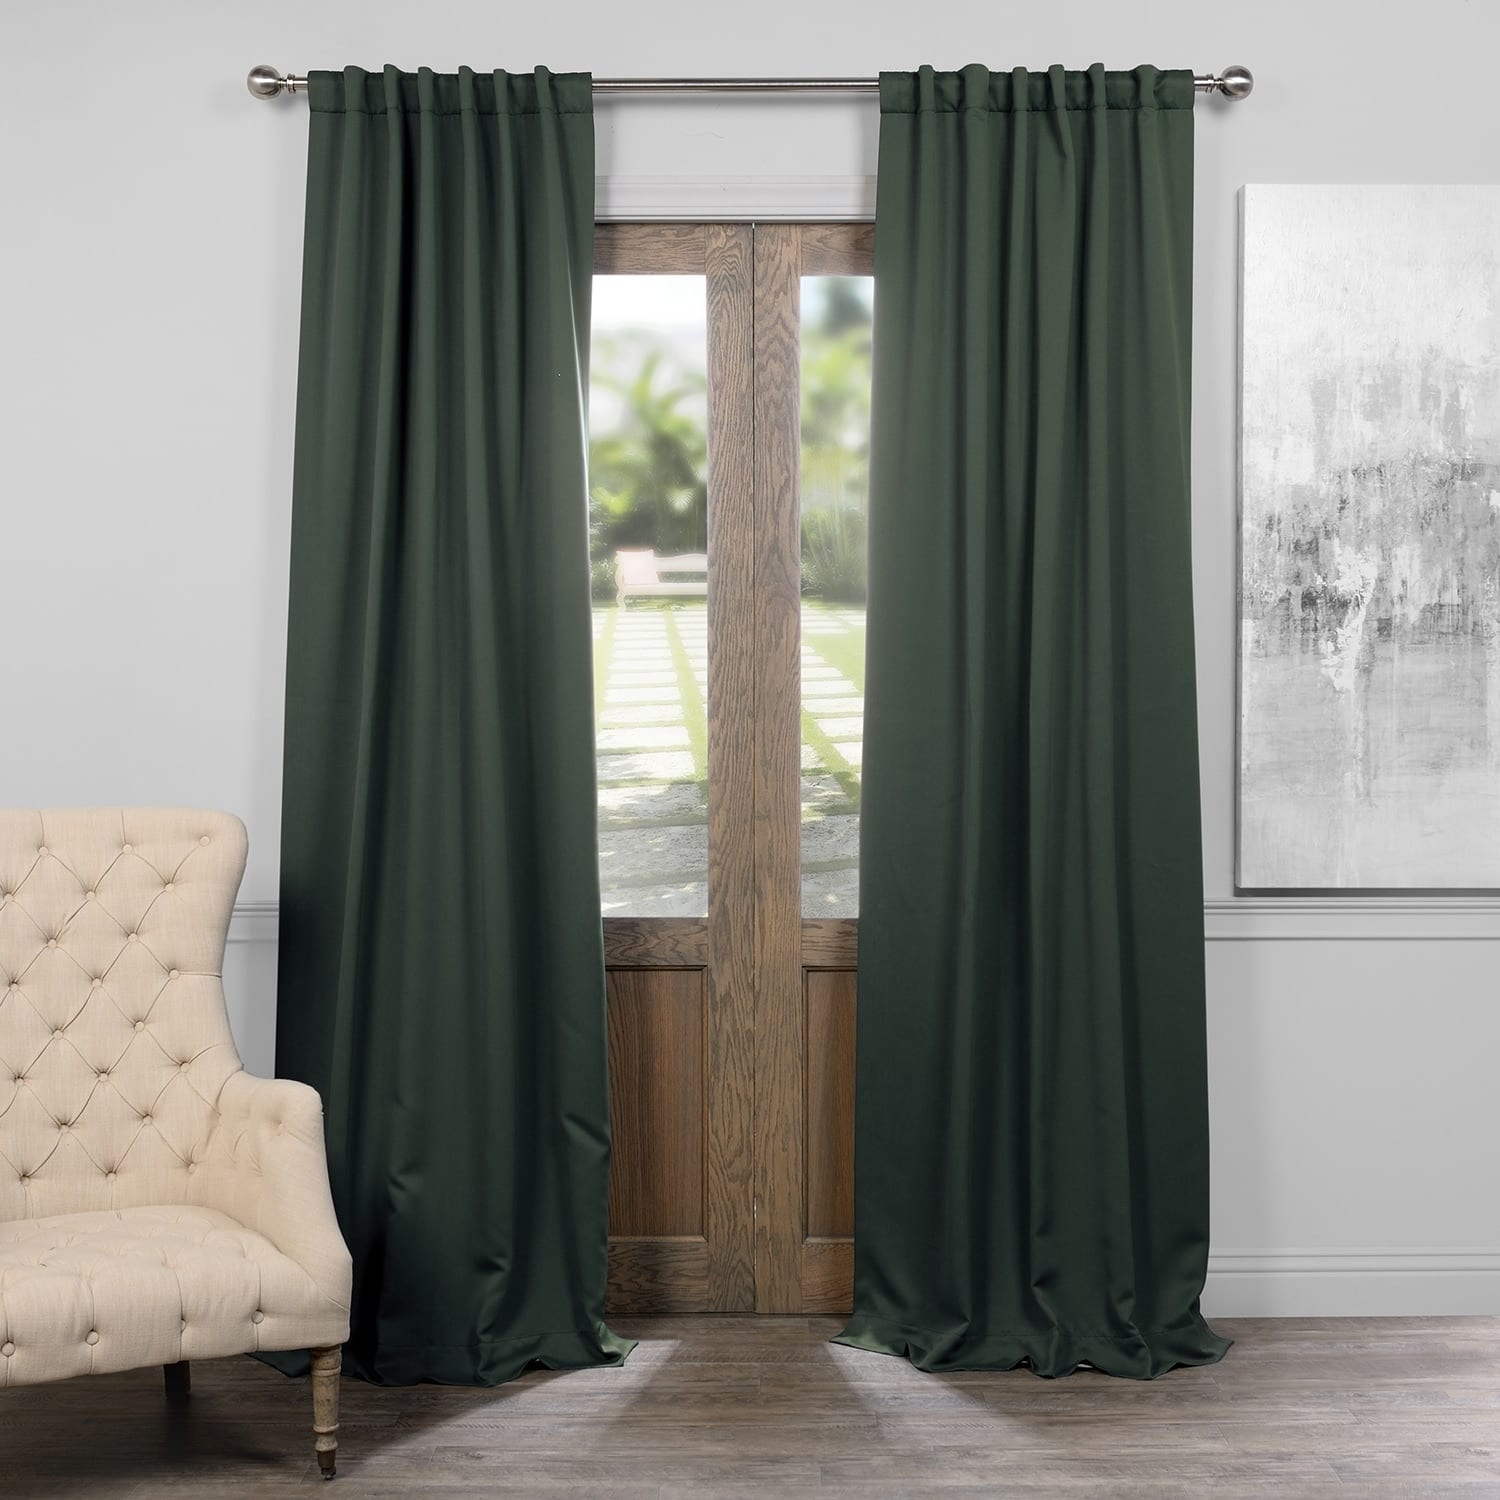 Exclusive Fabrics Thermal Insulated Solid Blackout 120 Inch Curtain Panel Pair – 50 X 120 With Regard To Solid Thermal Insulated Blackout Curtain Panel Pairs (View 24 of 30)